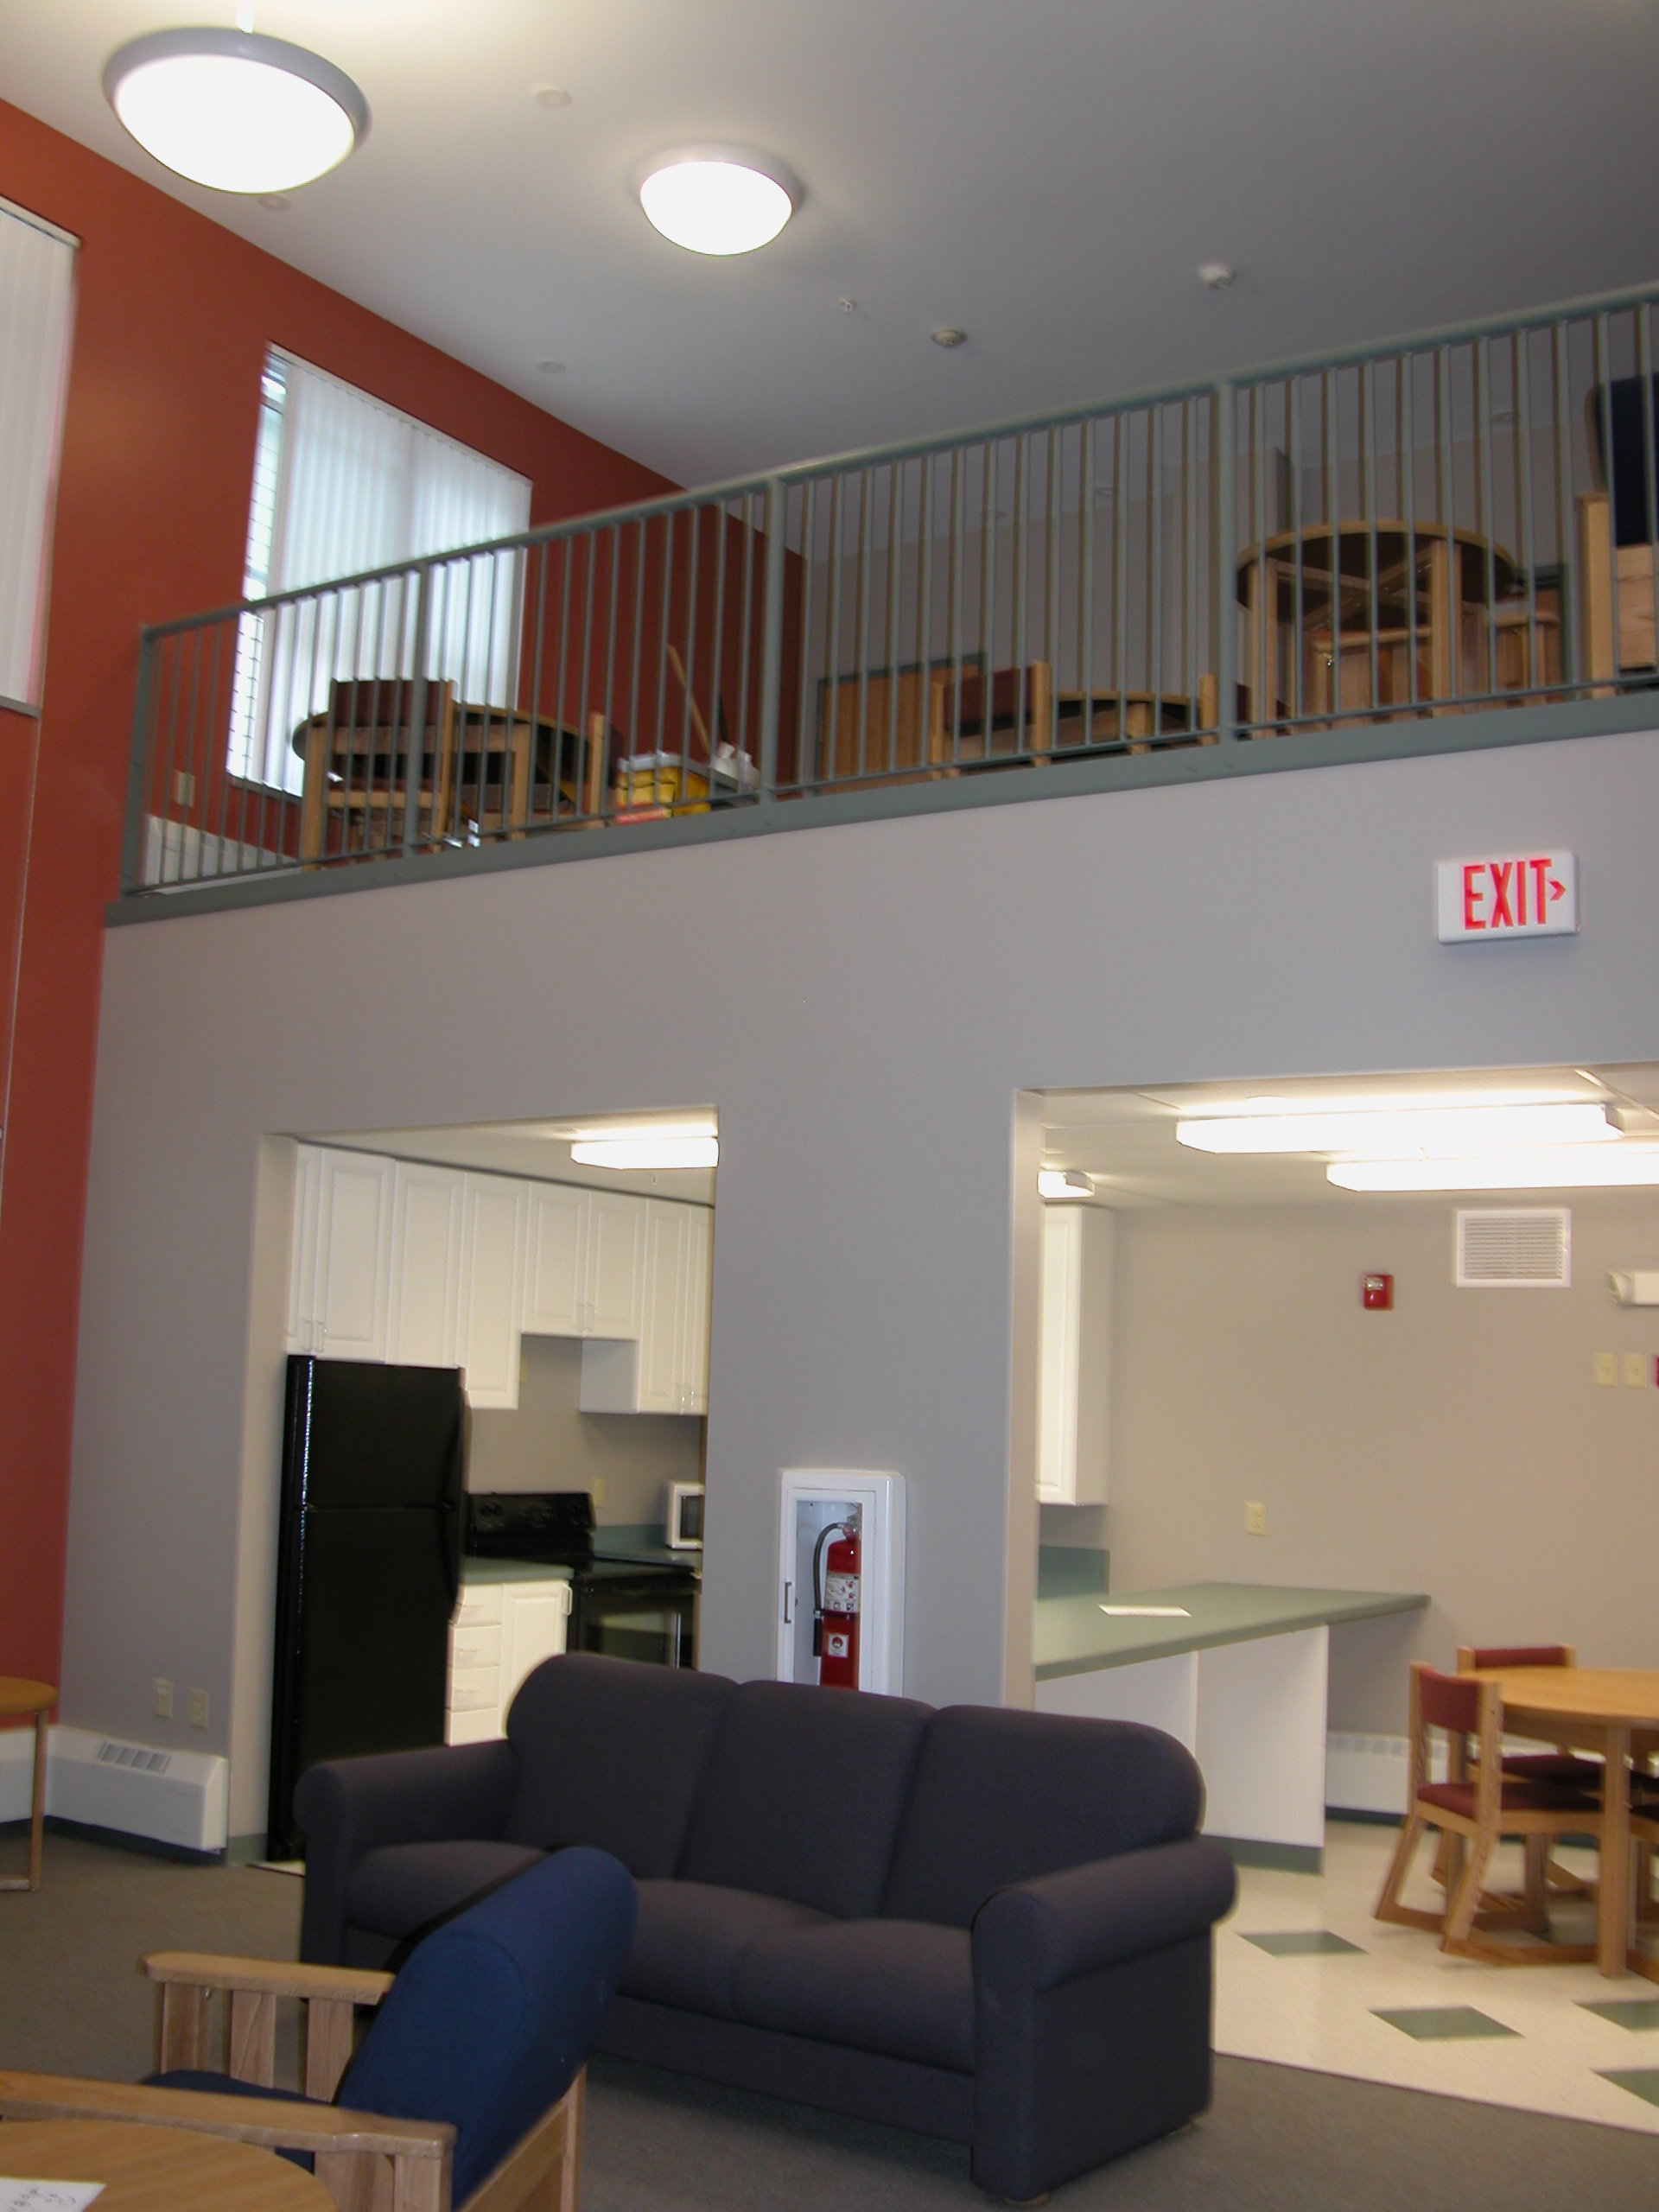 Student Living Room Decor: Russell Construction Services